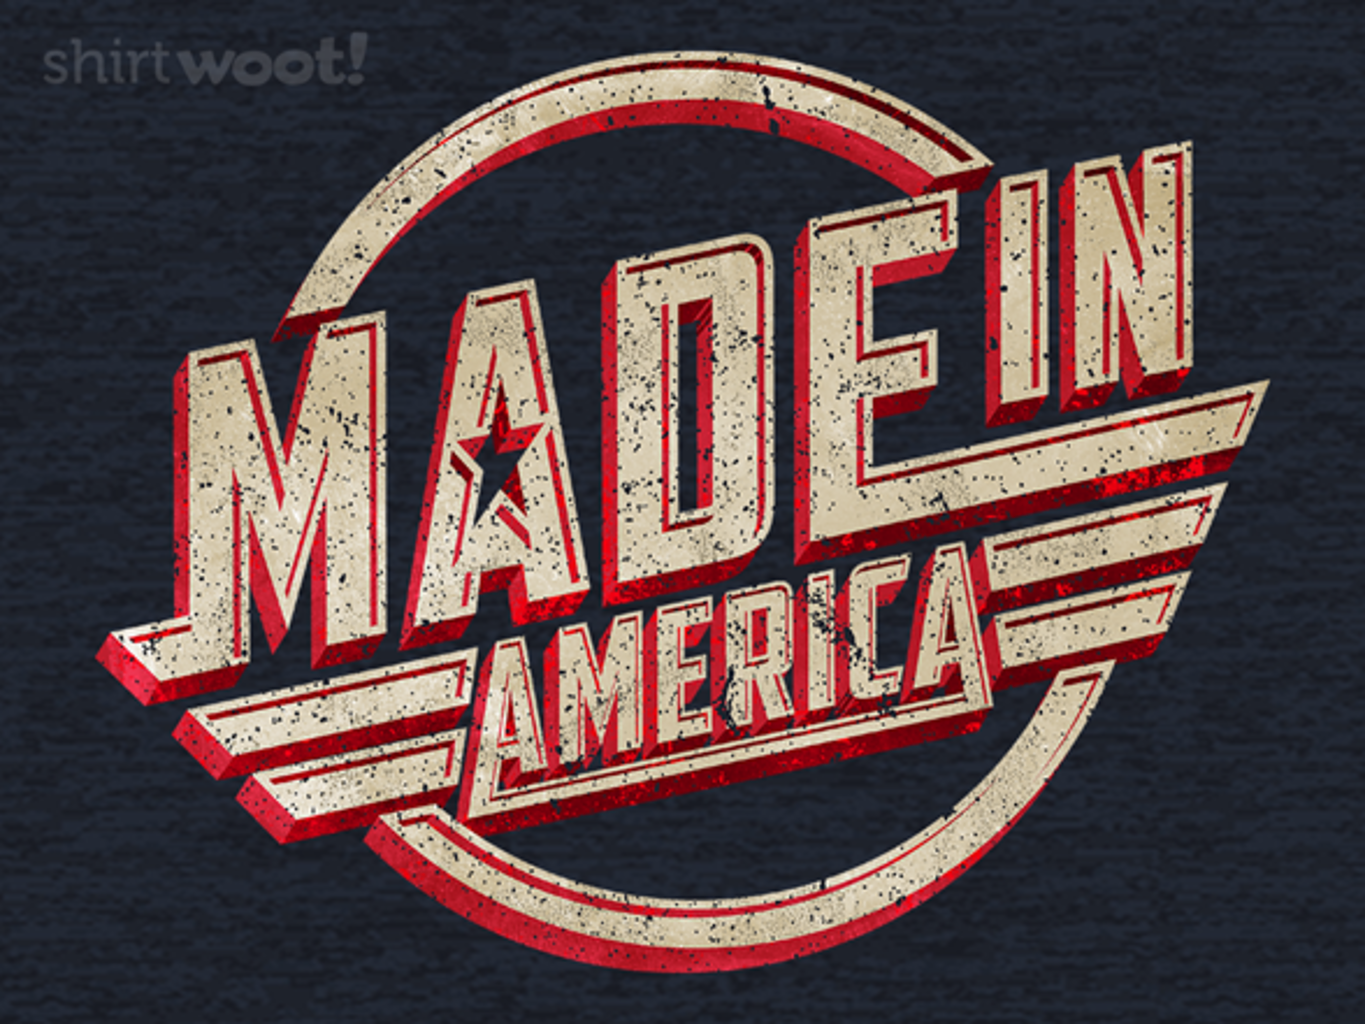 Woot!: Made in America